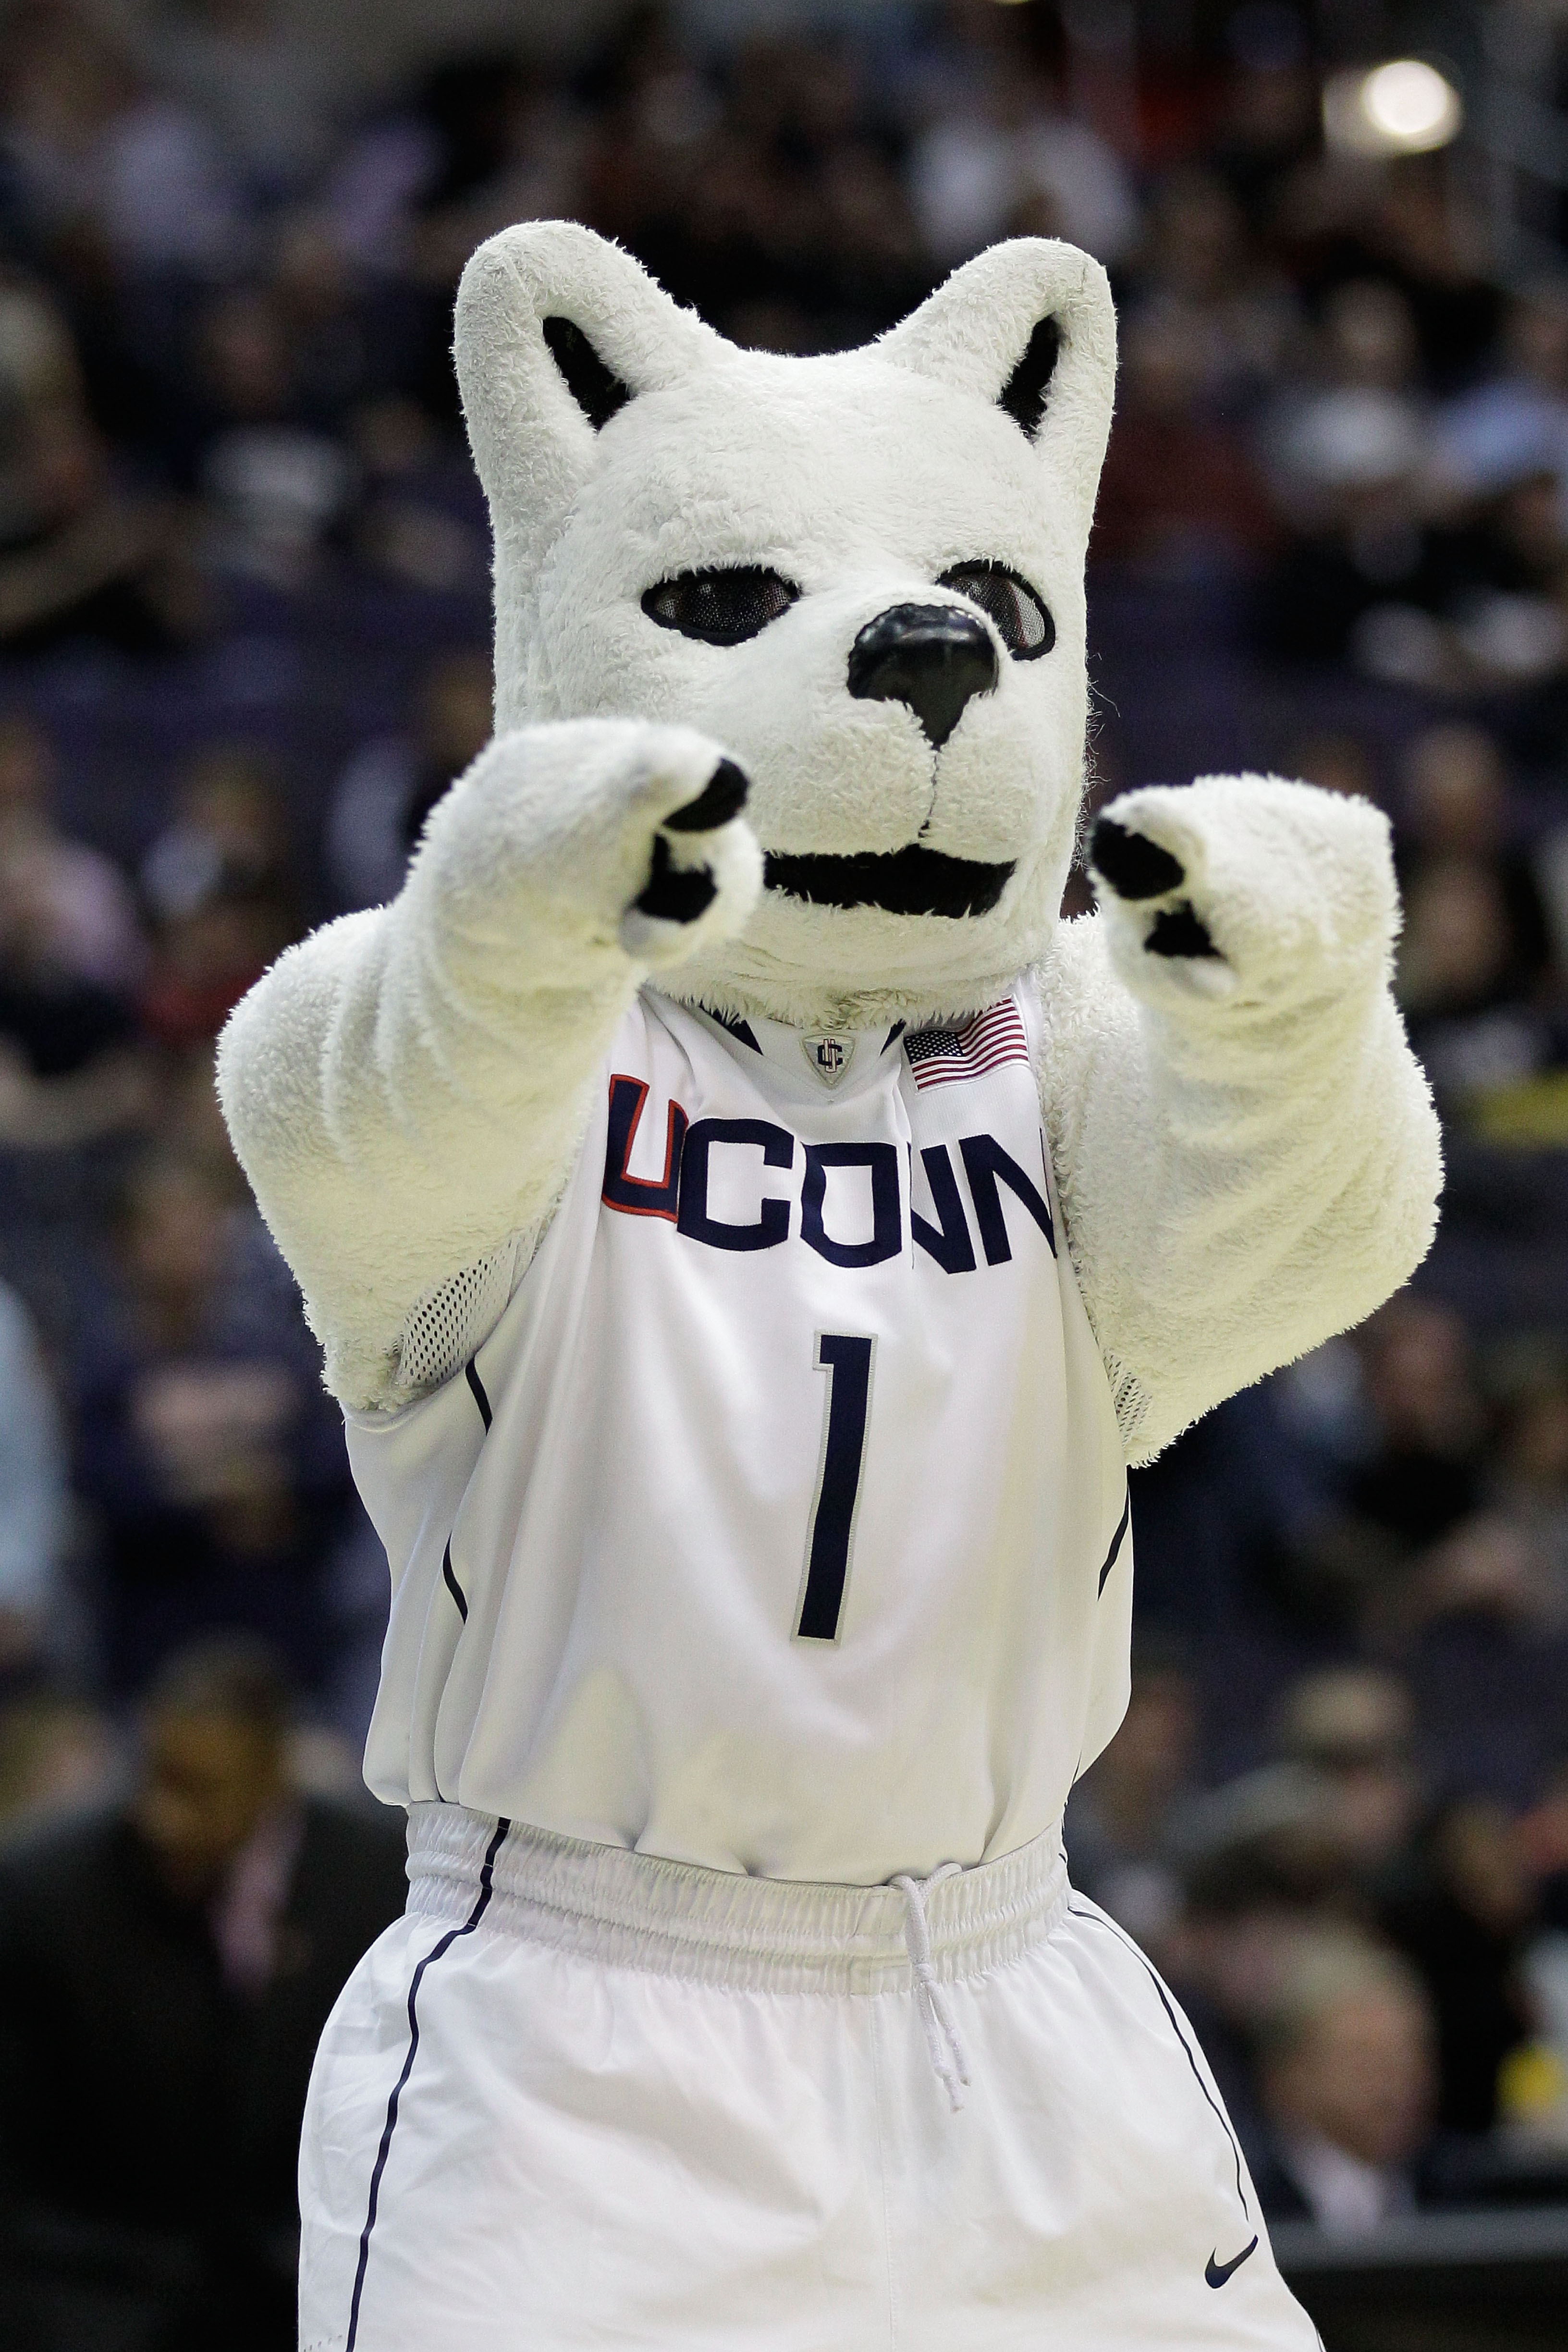 WASHINGTON - MARCH 19:  The Connecticut Huskies mascot performs during their game against the Cincinnati Bearcats during the third round of the 2011 NCAA men's basketball tournament at Verizon Center on March 19, 2011 in Washington, DC.  (Photo by Rob Car